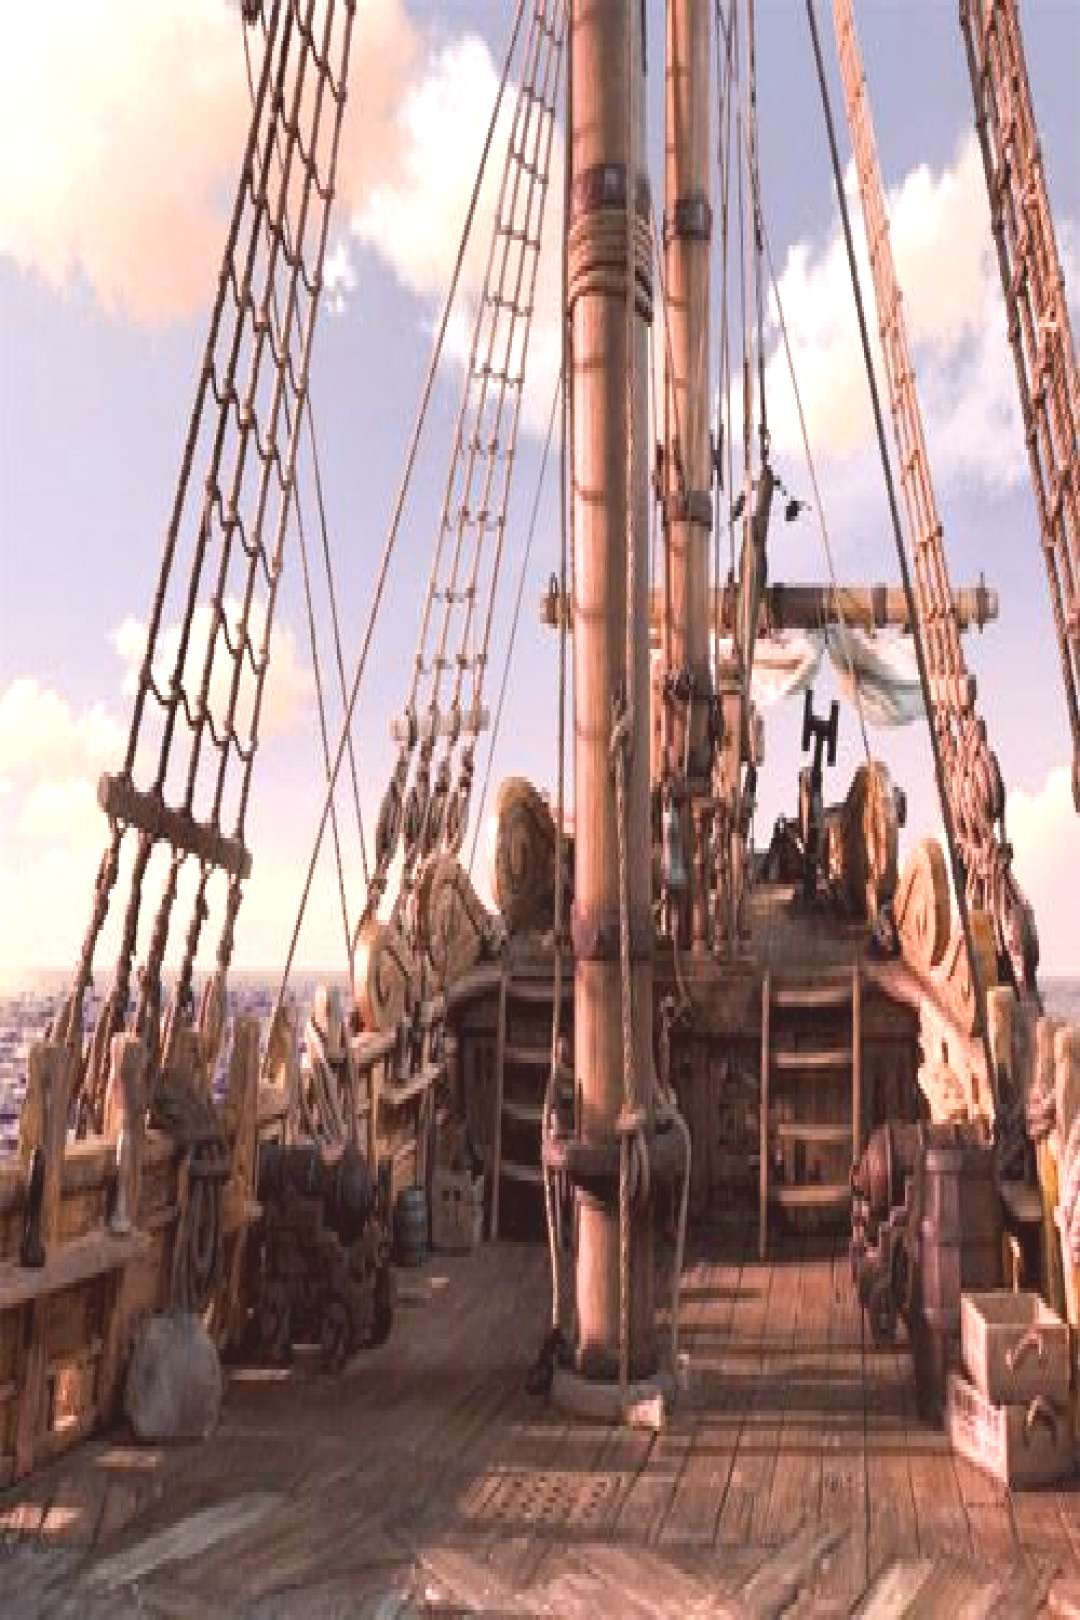 The Pirates UK - Captains Log Production Blog - Greetings swabs, There's only nine weeks shooti